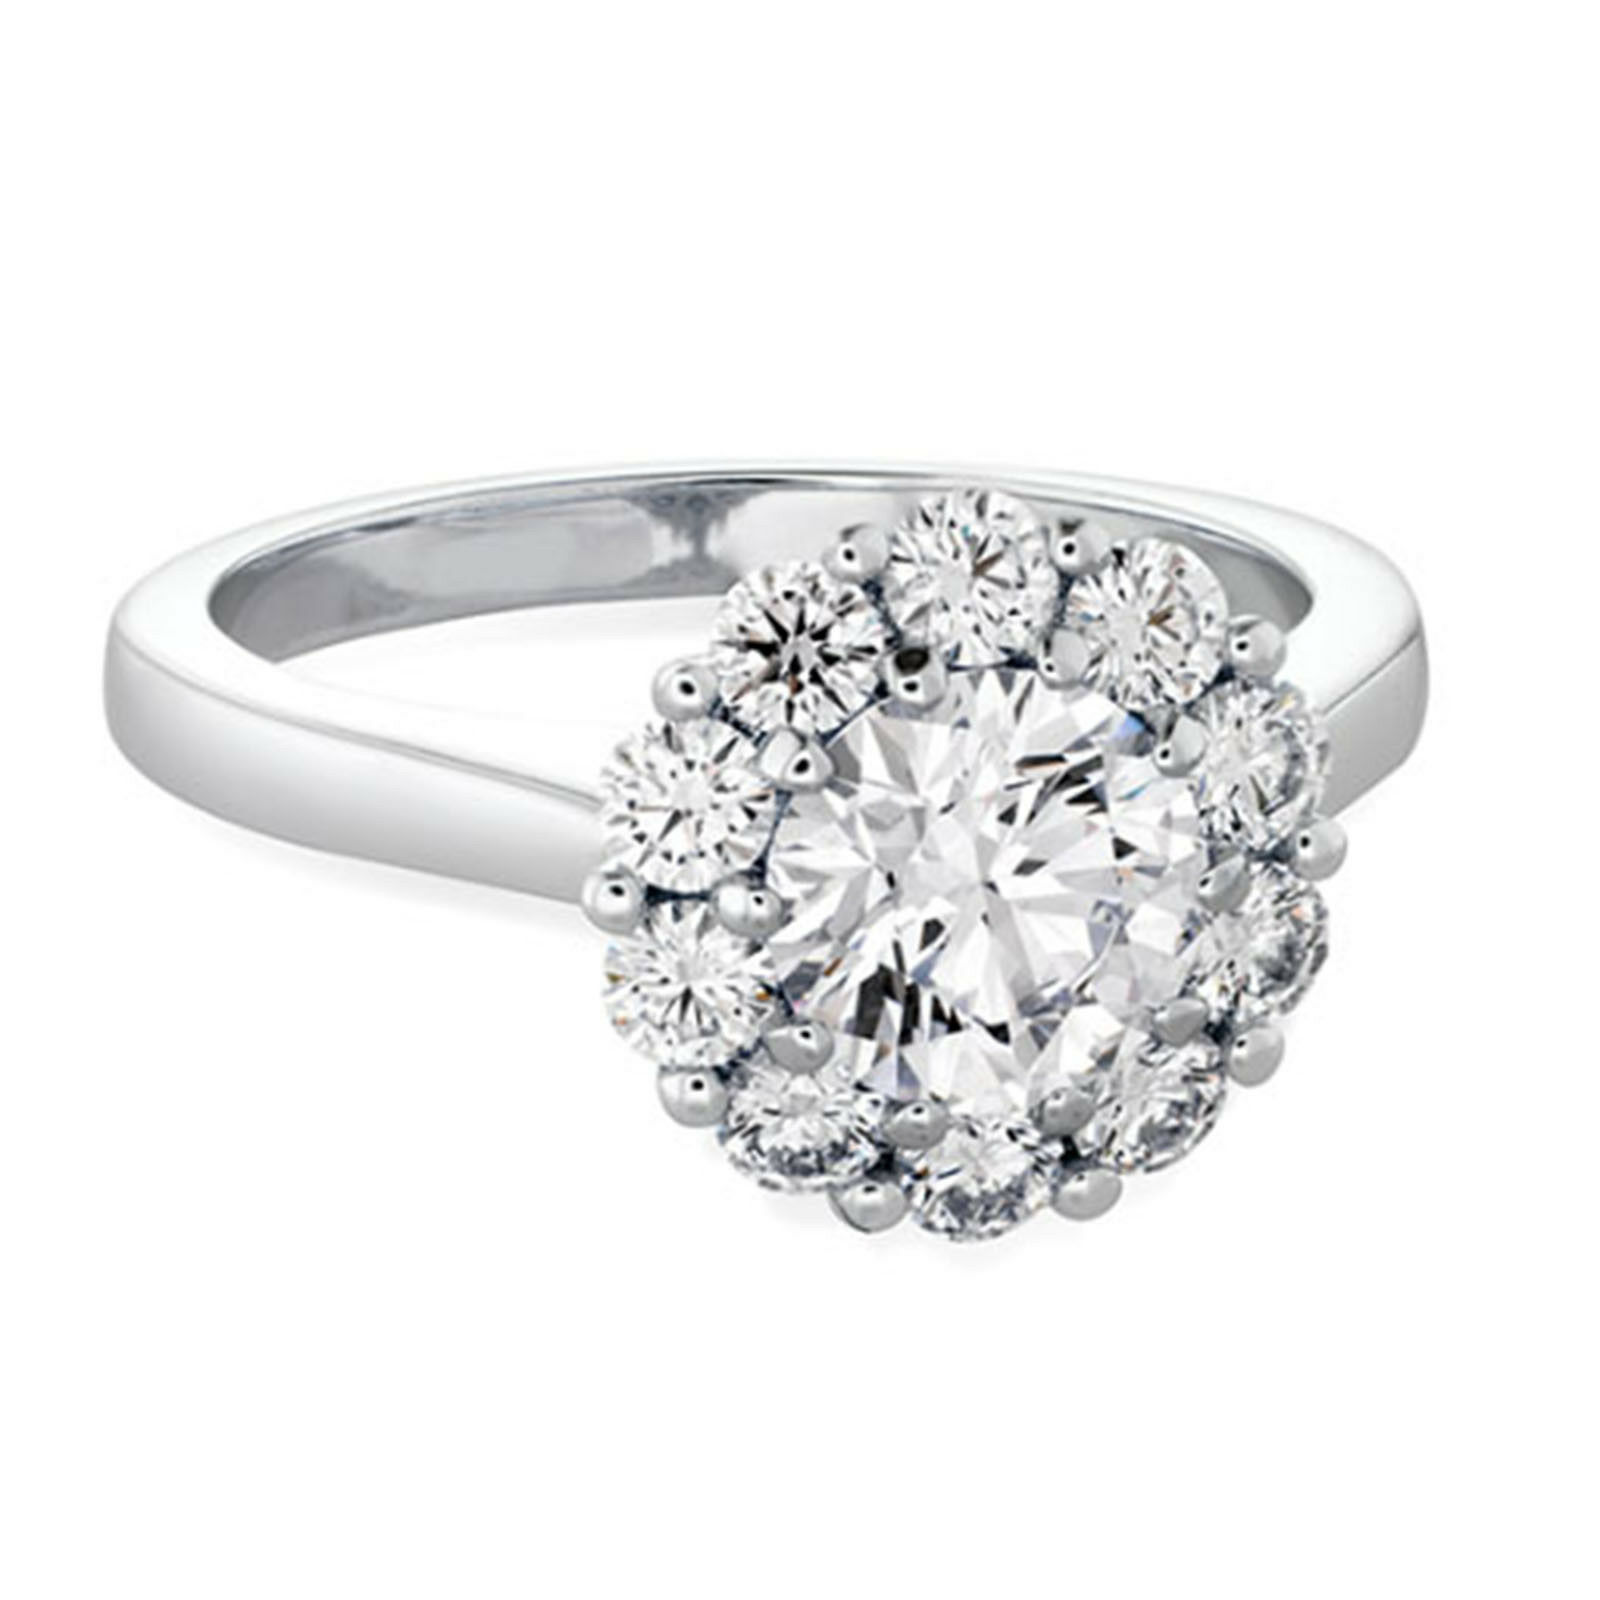 0.70 Ct Real Diamond Engagement Wedding Ring 14K Solid White gold Size 5.5 6 7 8